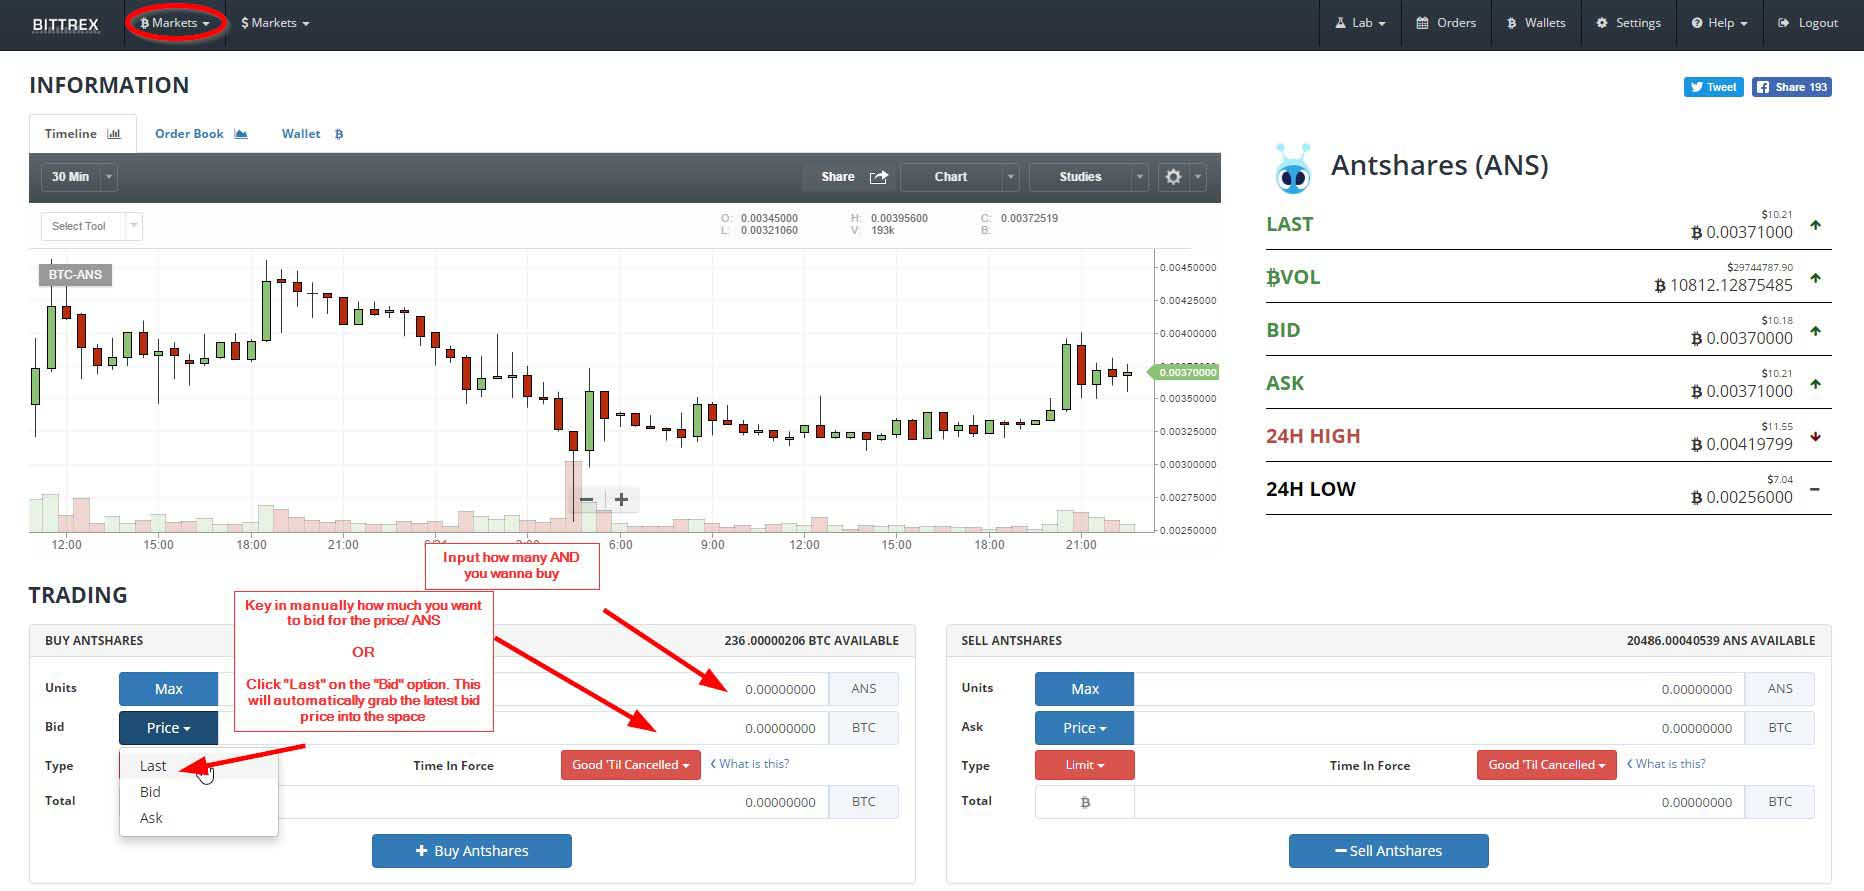 What Is Antshares? Should I Buy Antshares? Where to Buy Antshares?